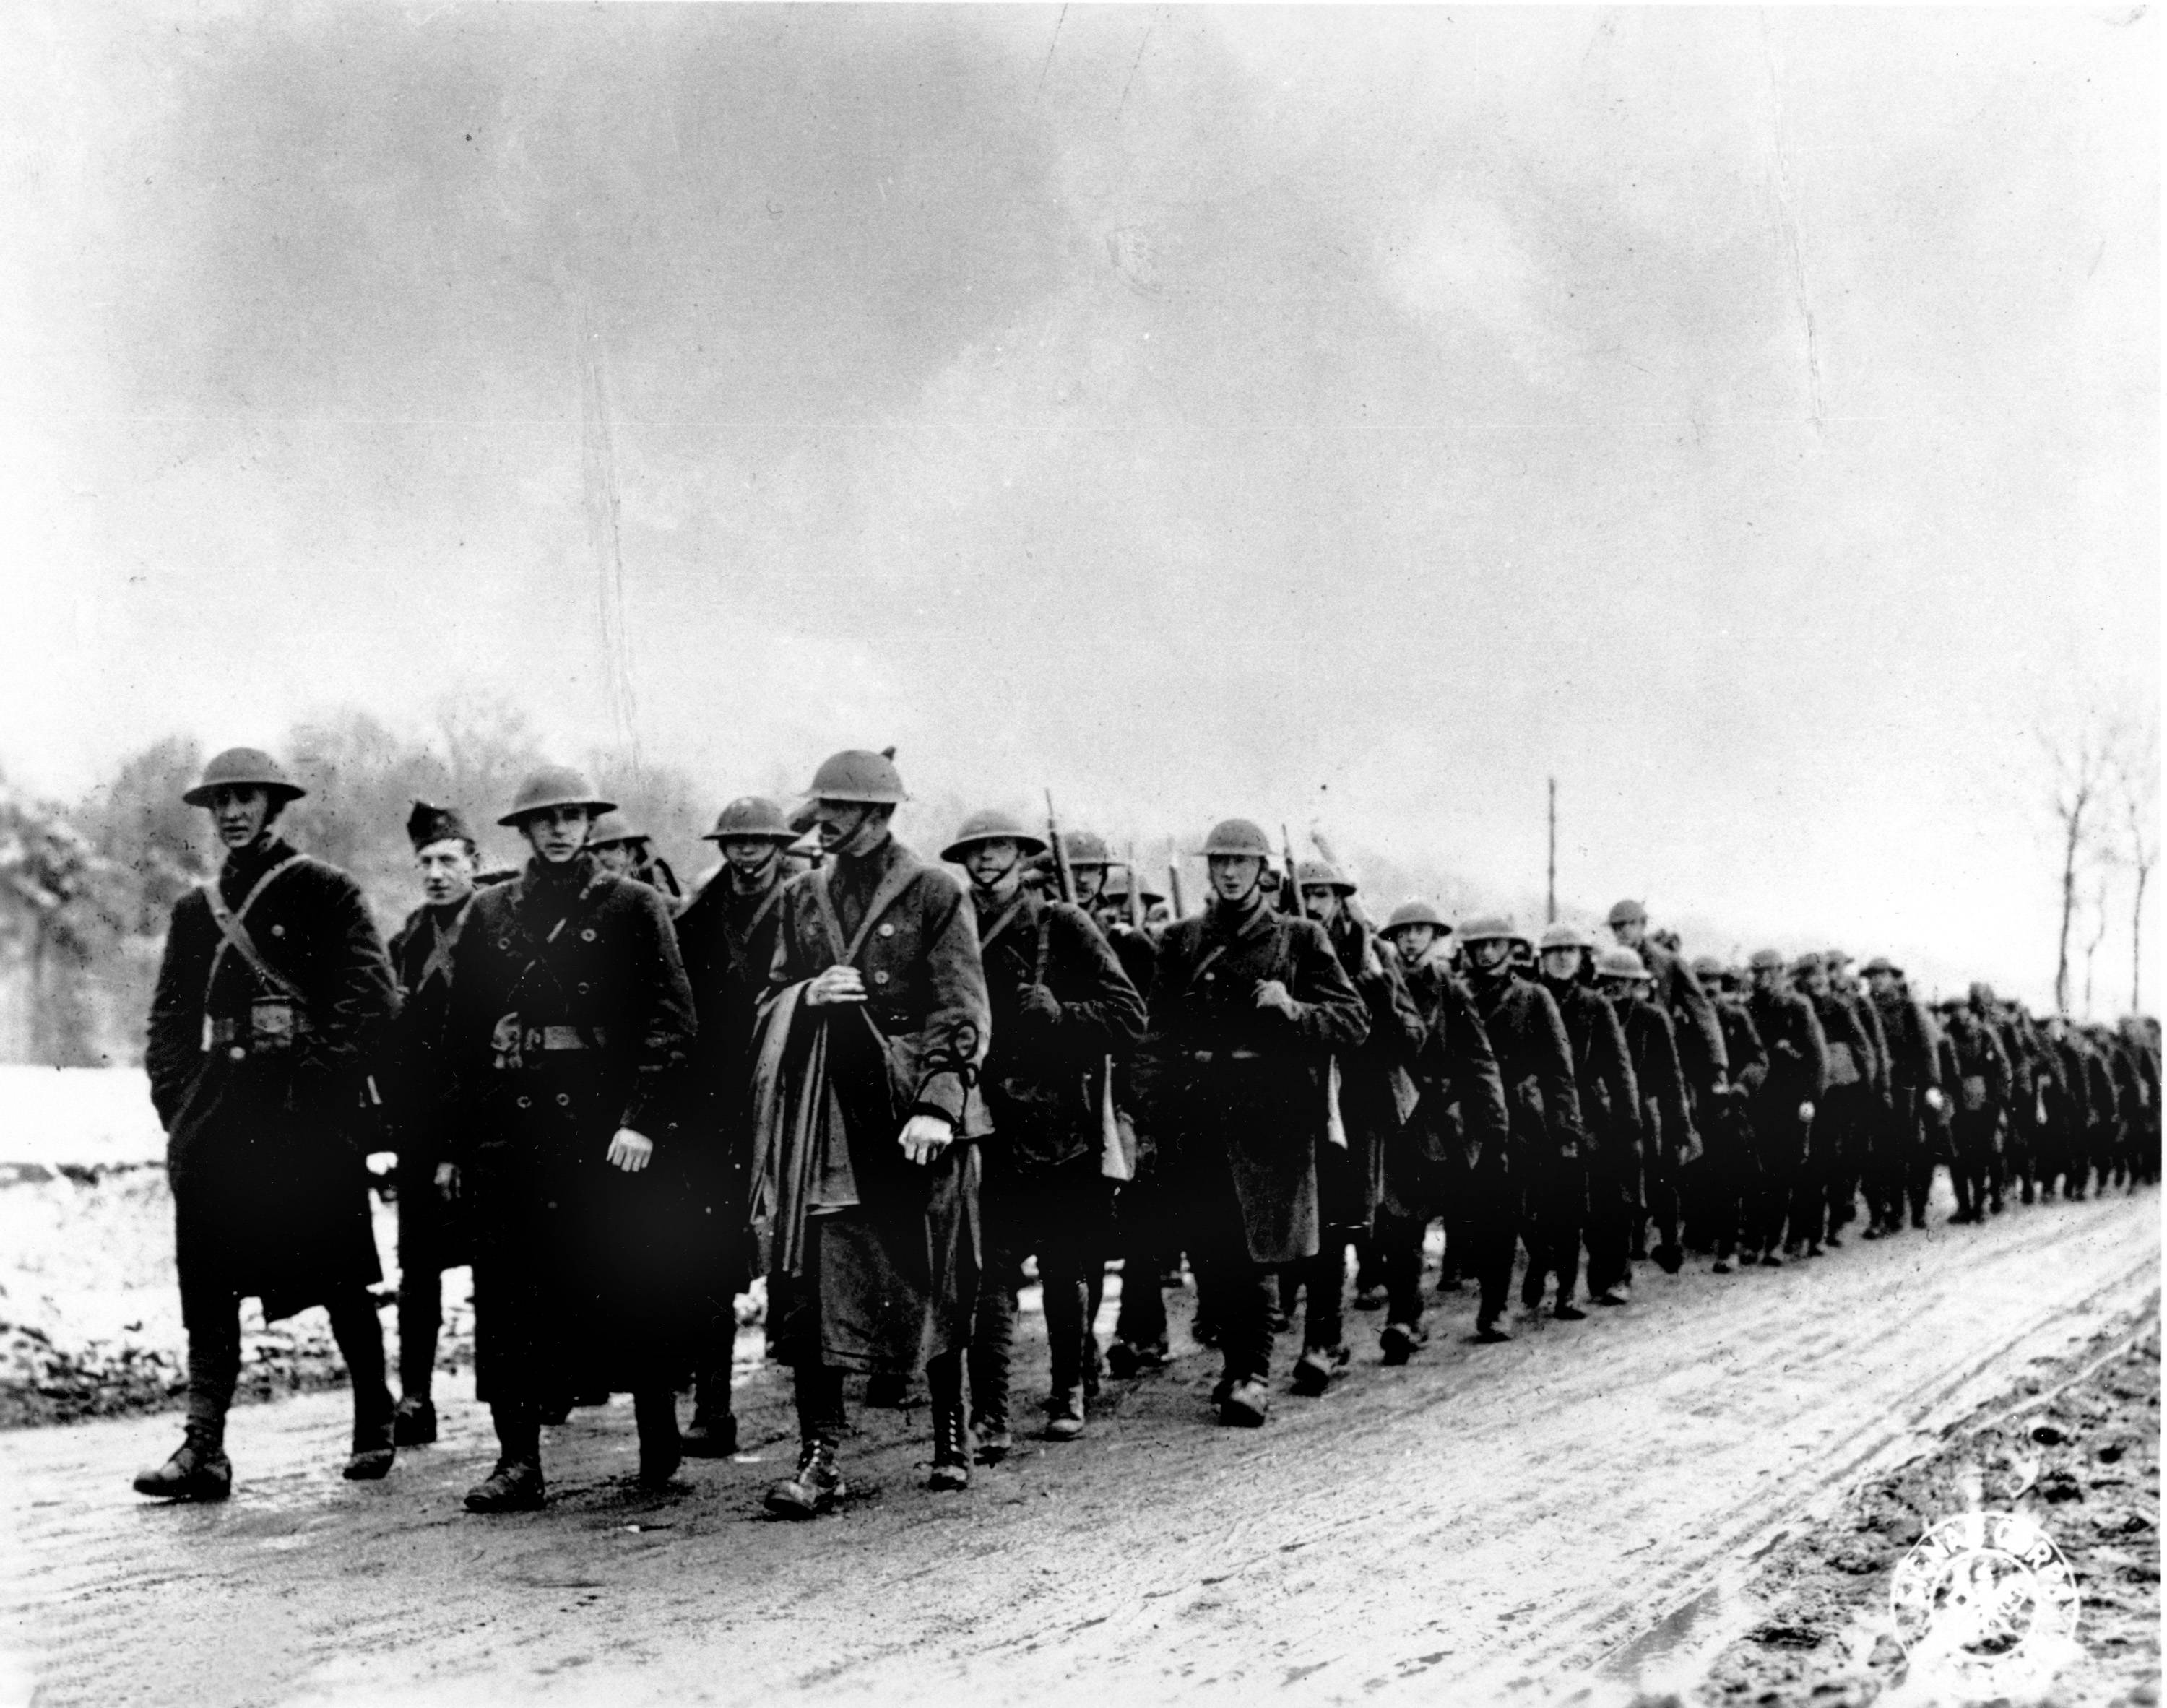 82 OF 100: In this March 1918 file photo, American soldiers of Company K, 165th Infantry of the Fighting 69th, Old Rainbow Division, march to the trenches at St. Clement, France during World War I.